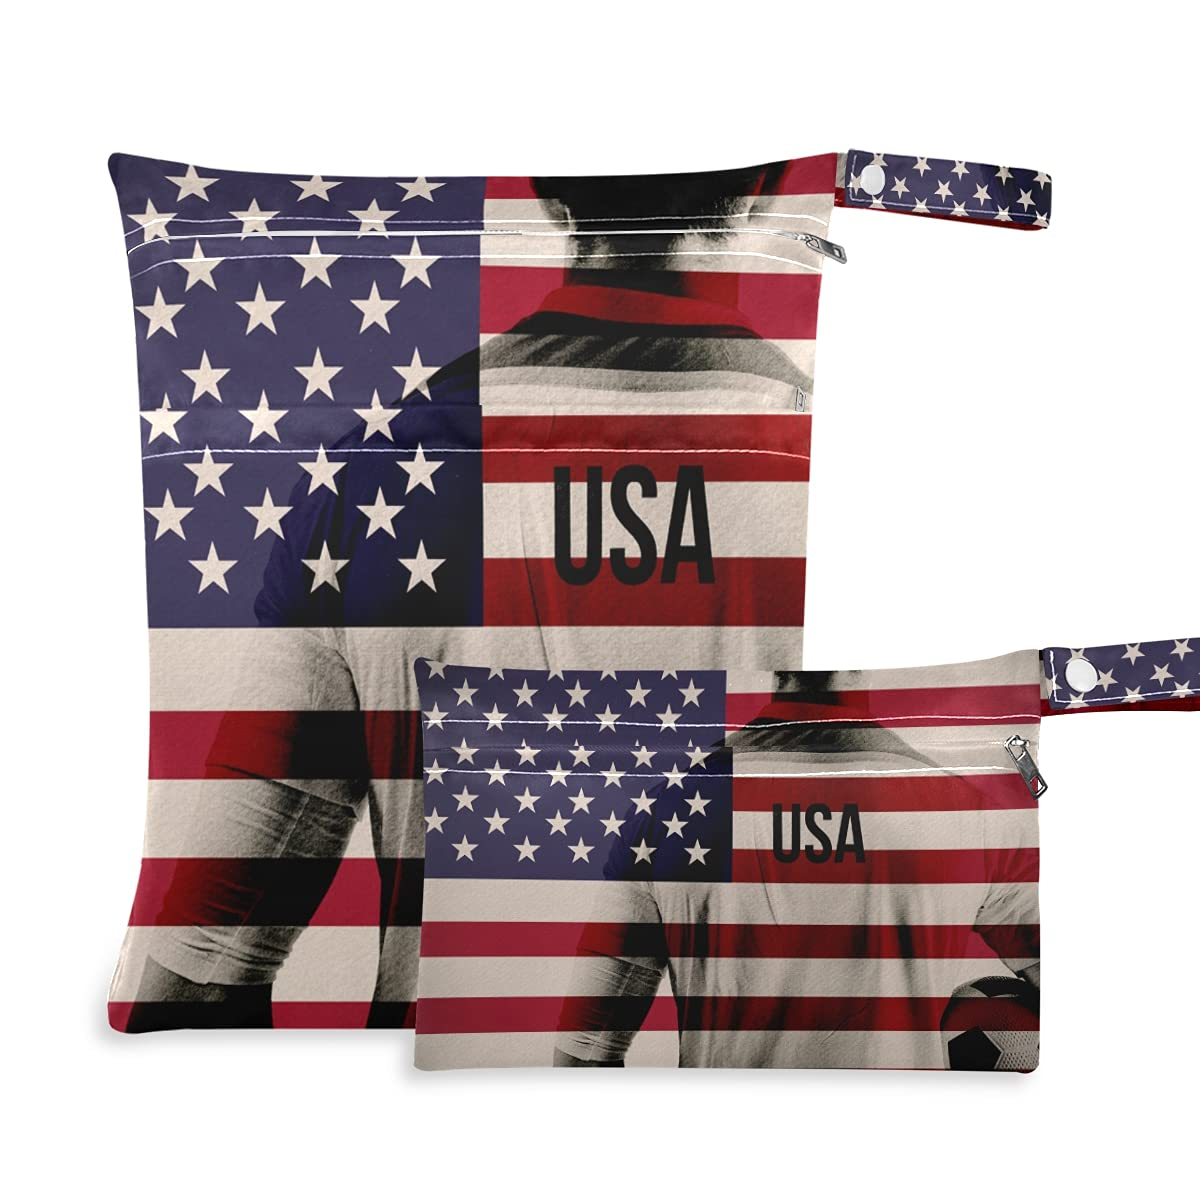 USA Max 85% OFF Football Player famous Holding National Flag D Bag Reusable Dry Wet